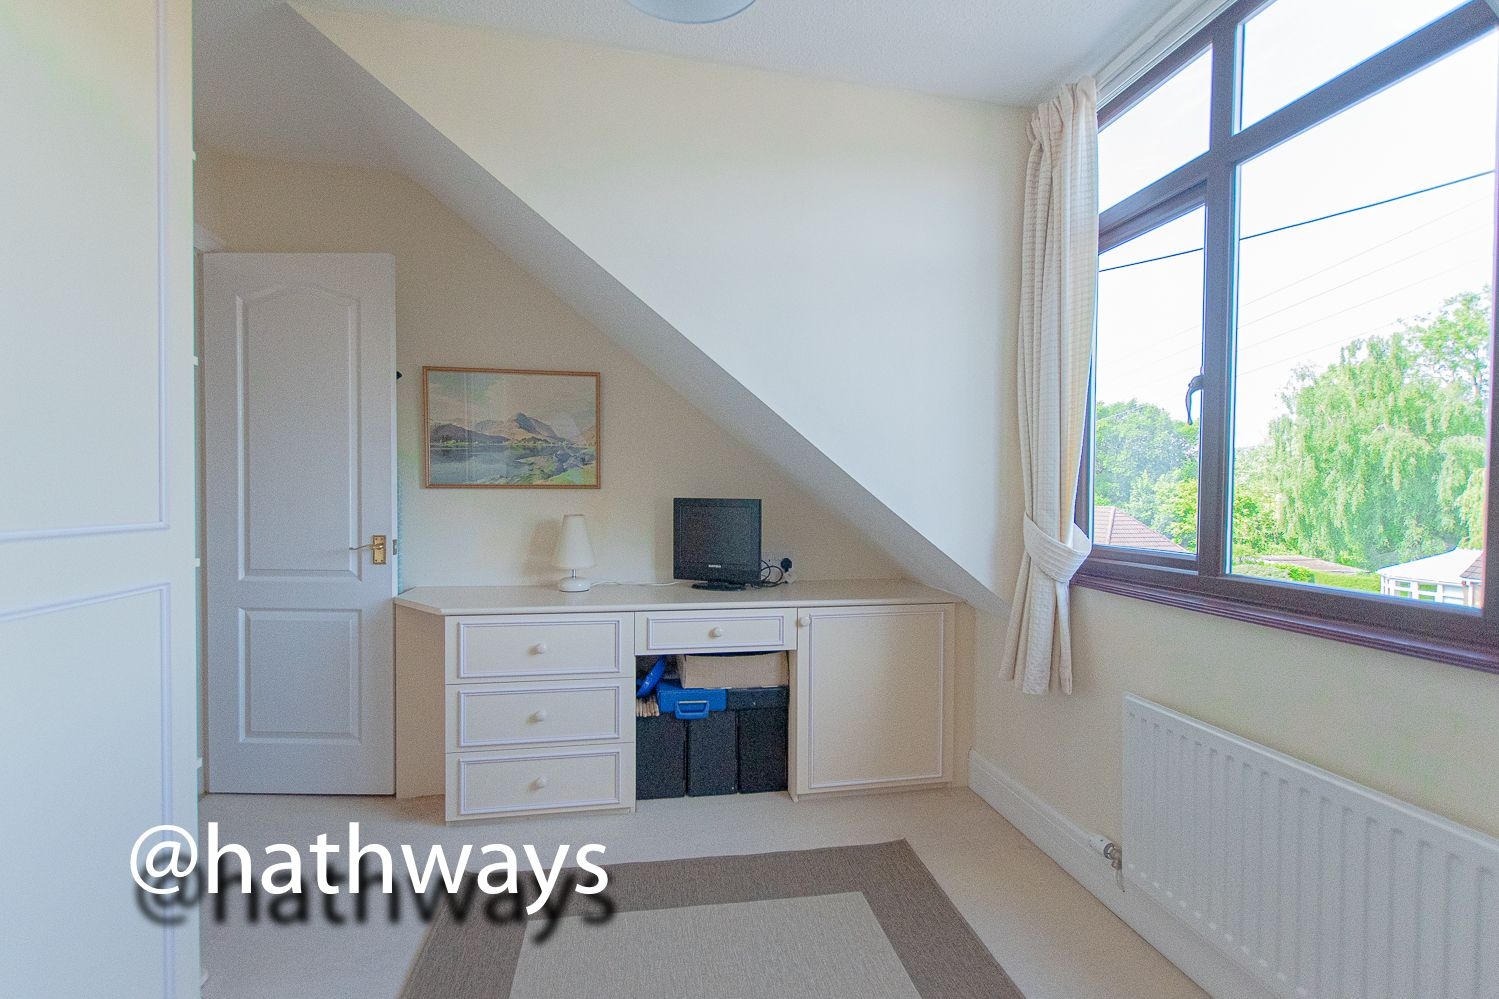 4 bed house for sale in Ashford Close South  - Property Image 42